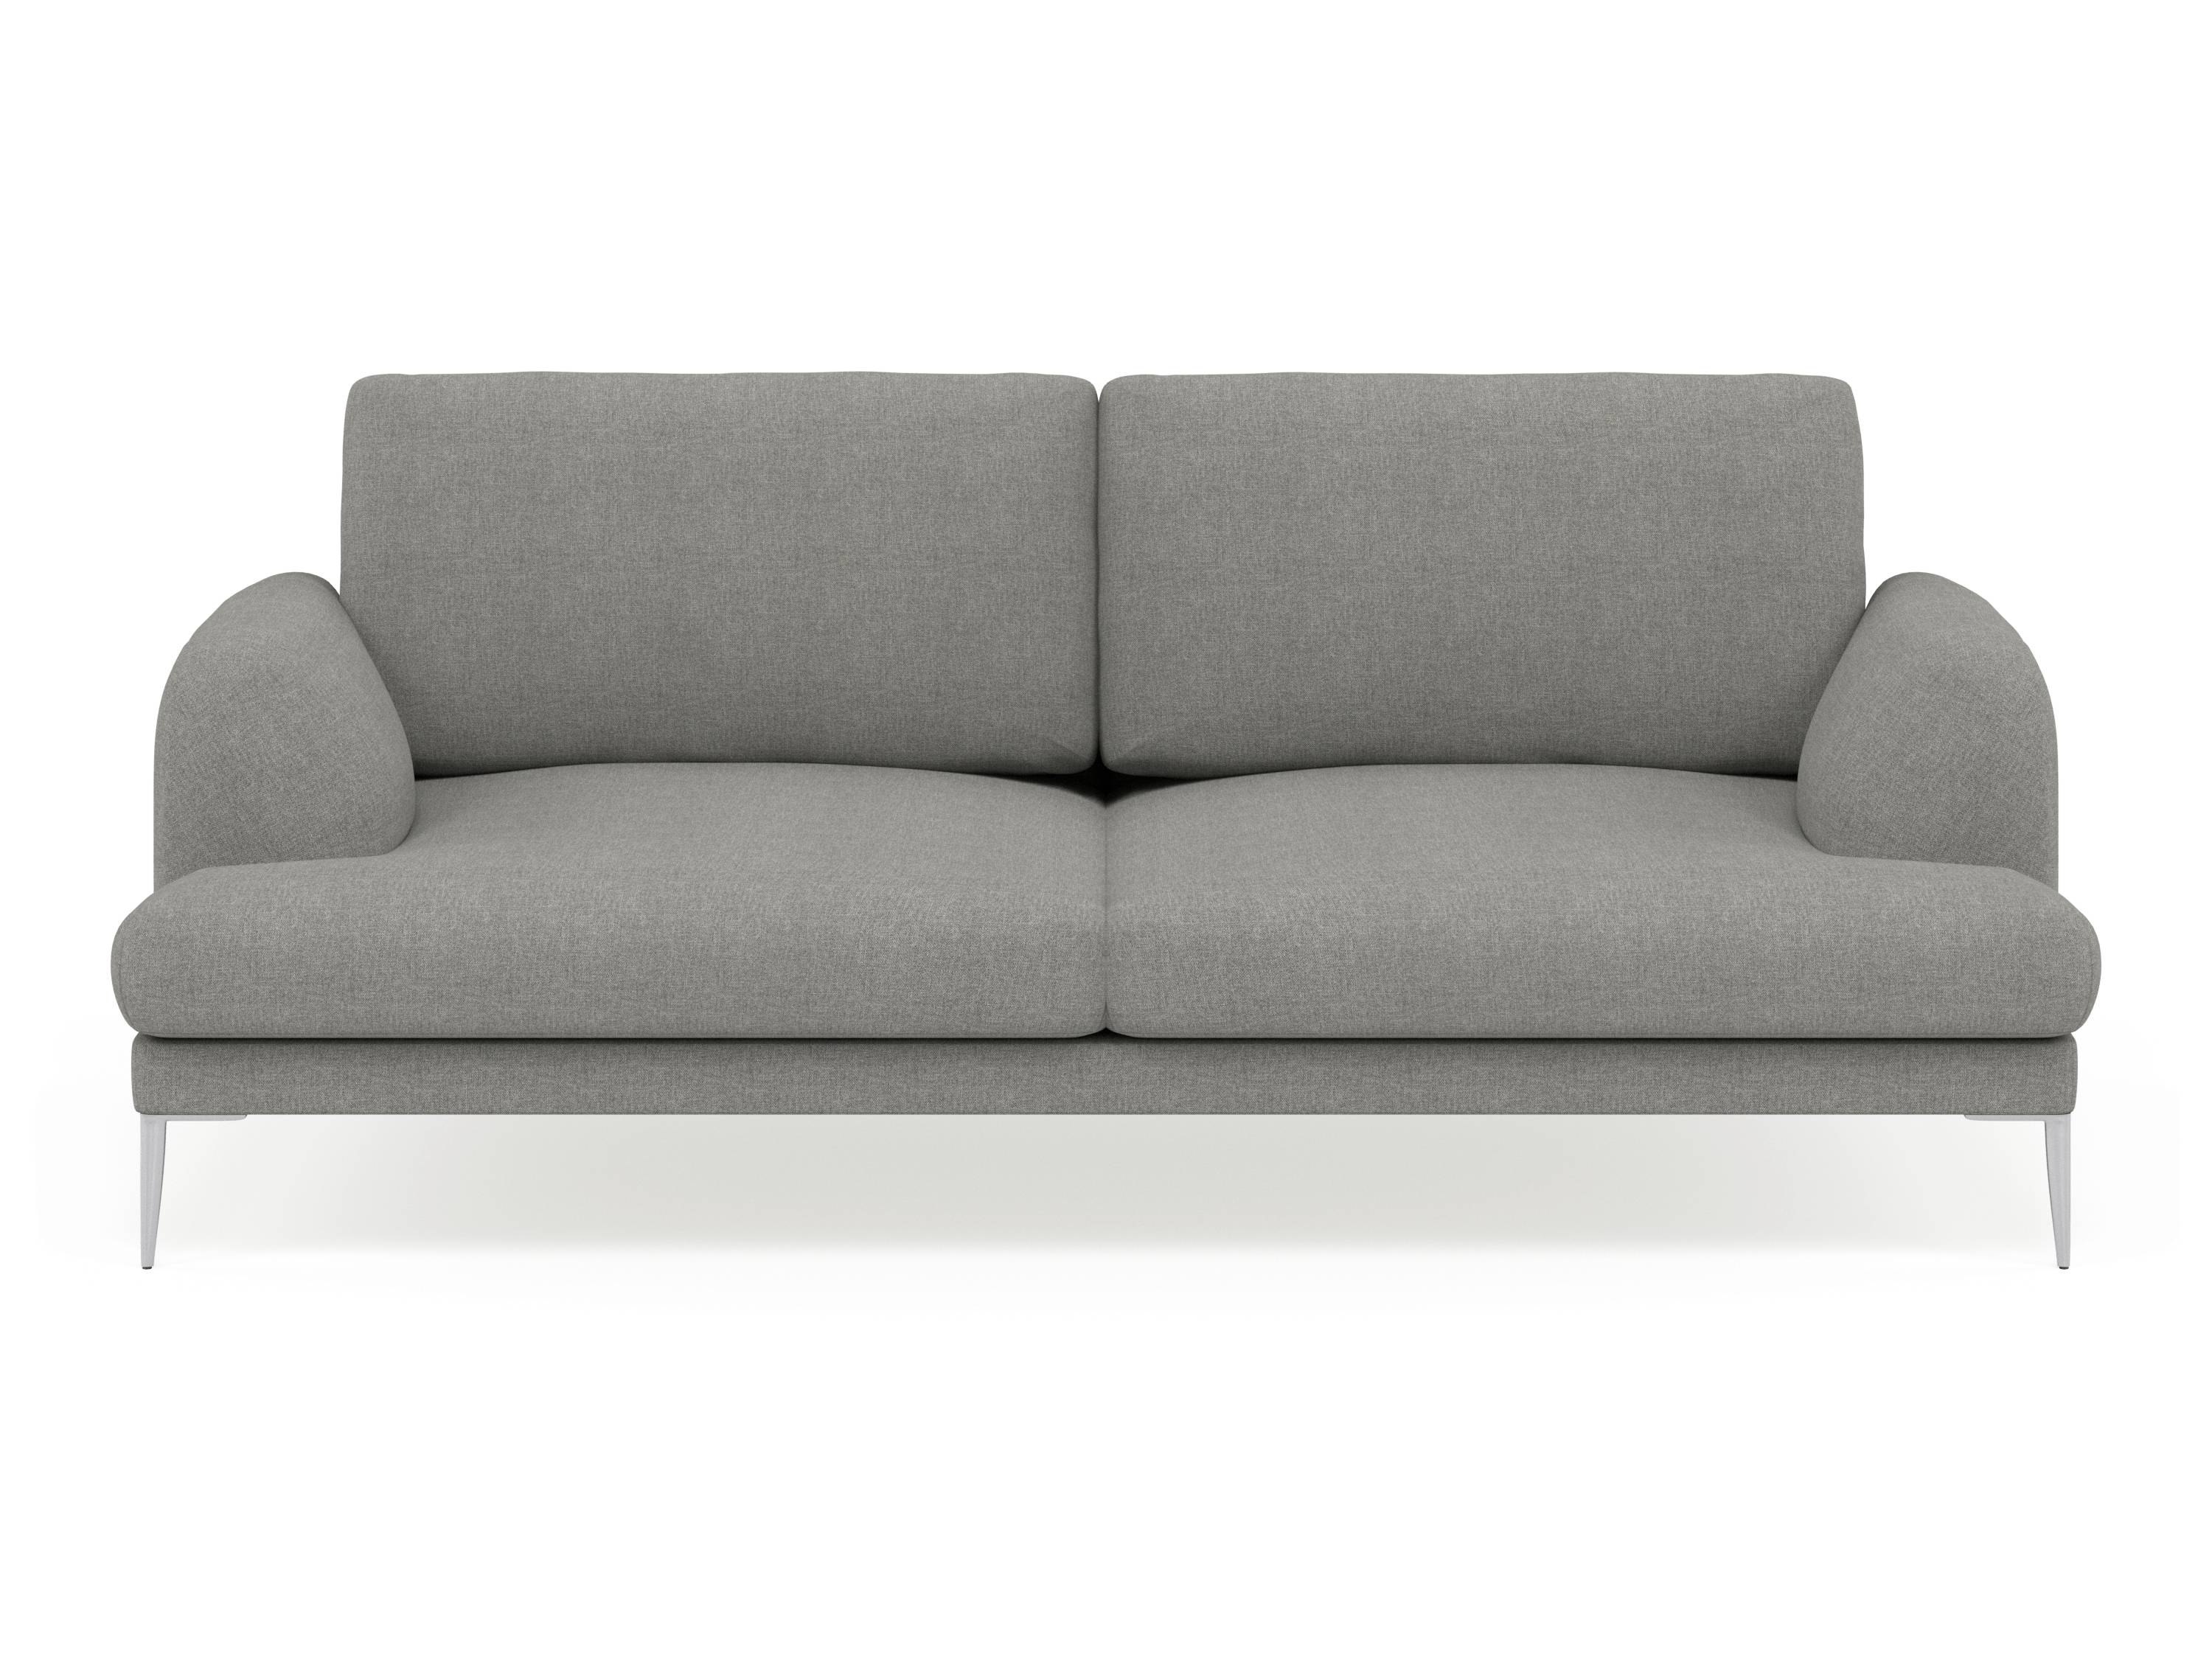 Compact 2 Seater Sofa – Leather Sectional Sofa Intended For Small 2 Seater Sofas (View 4 of 30)